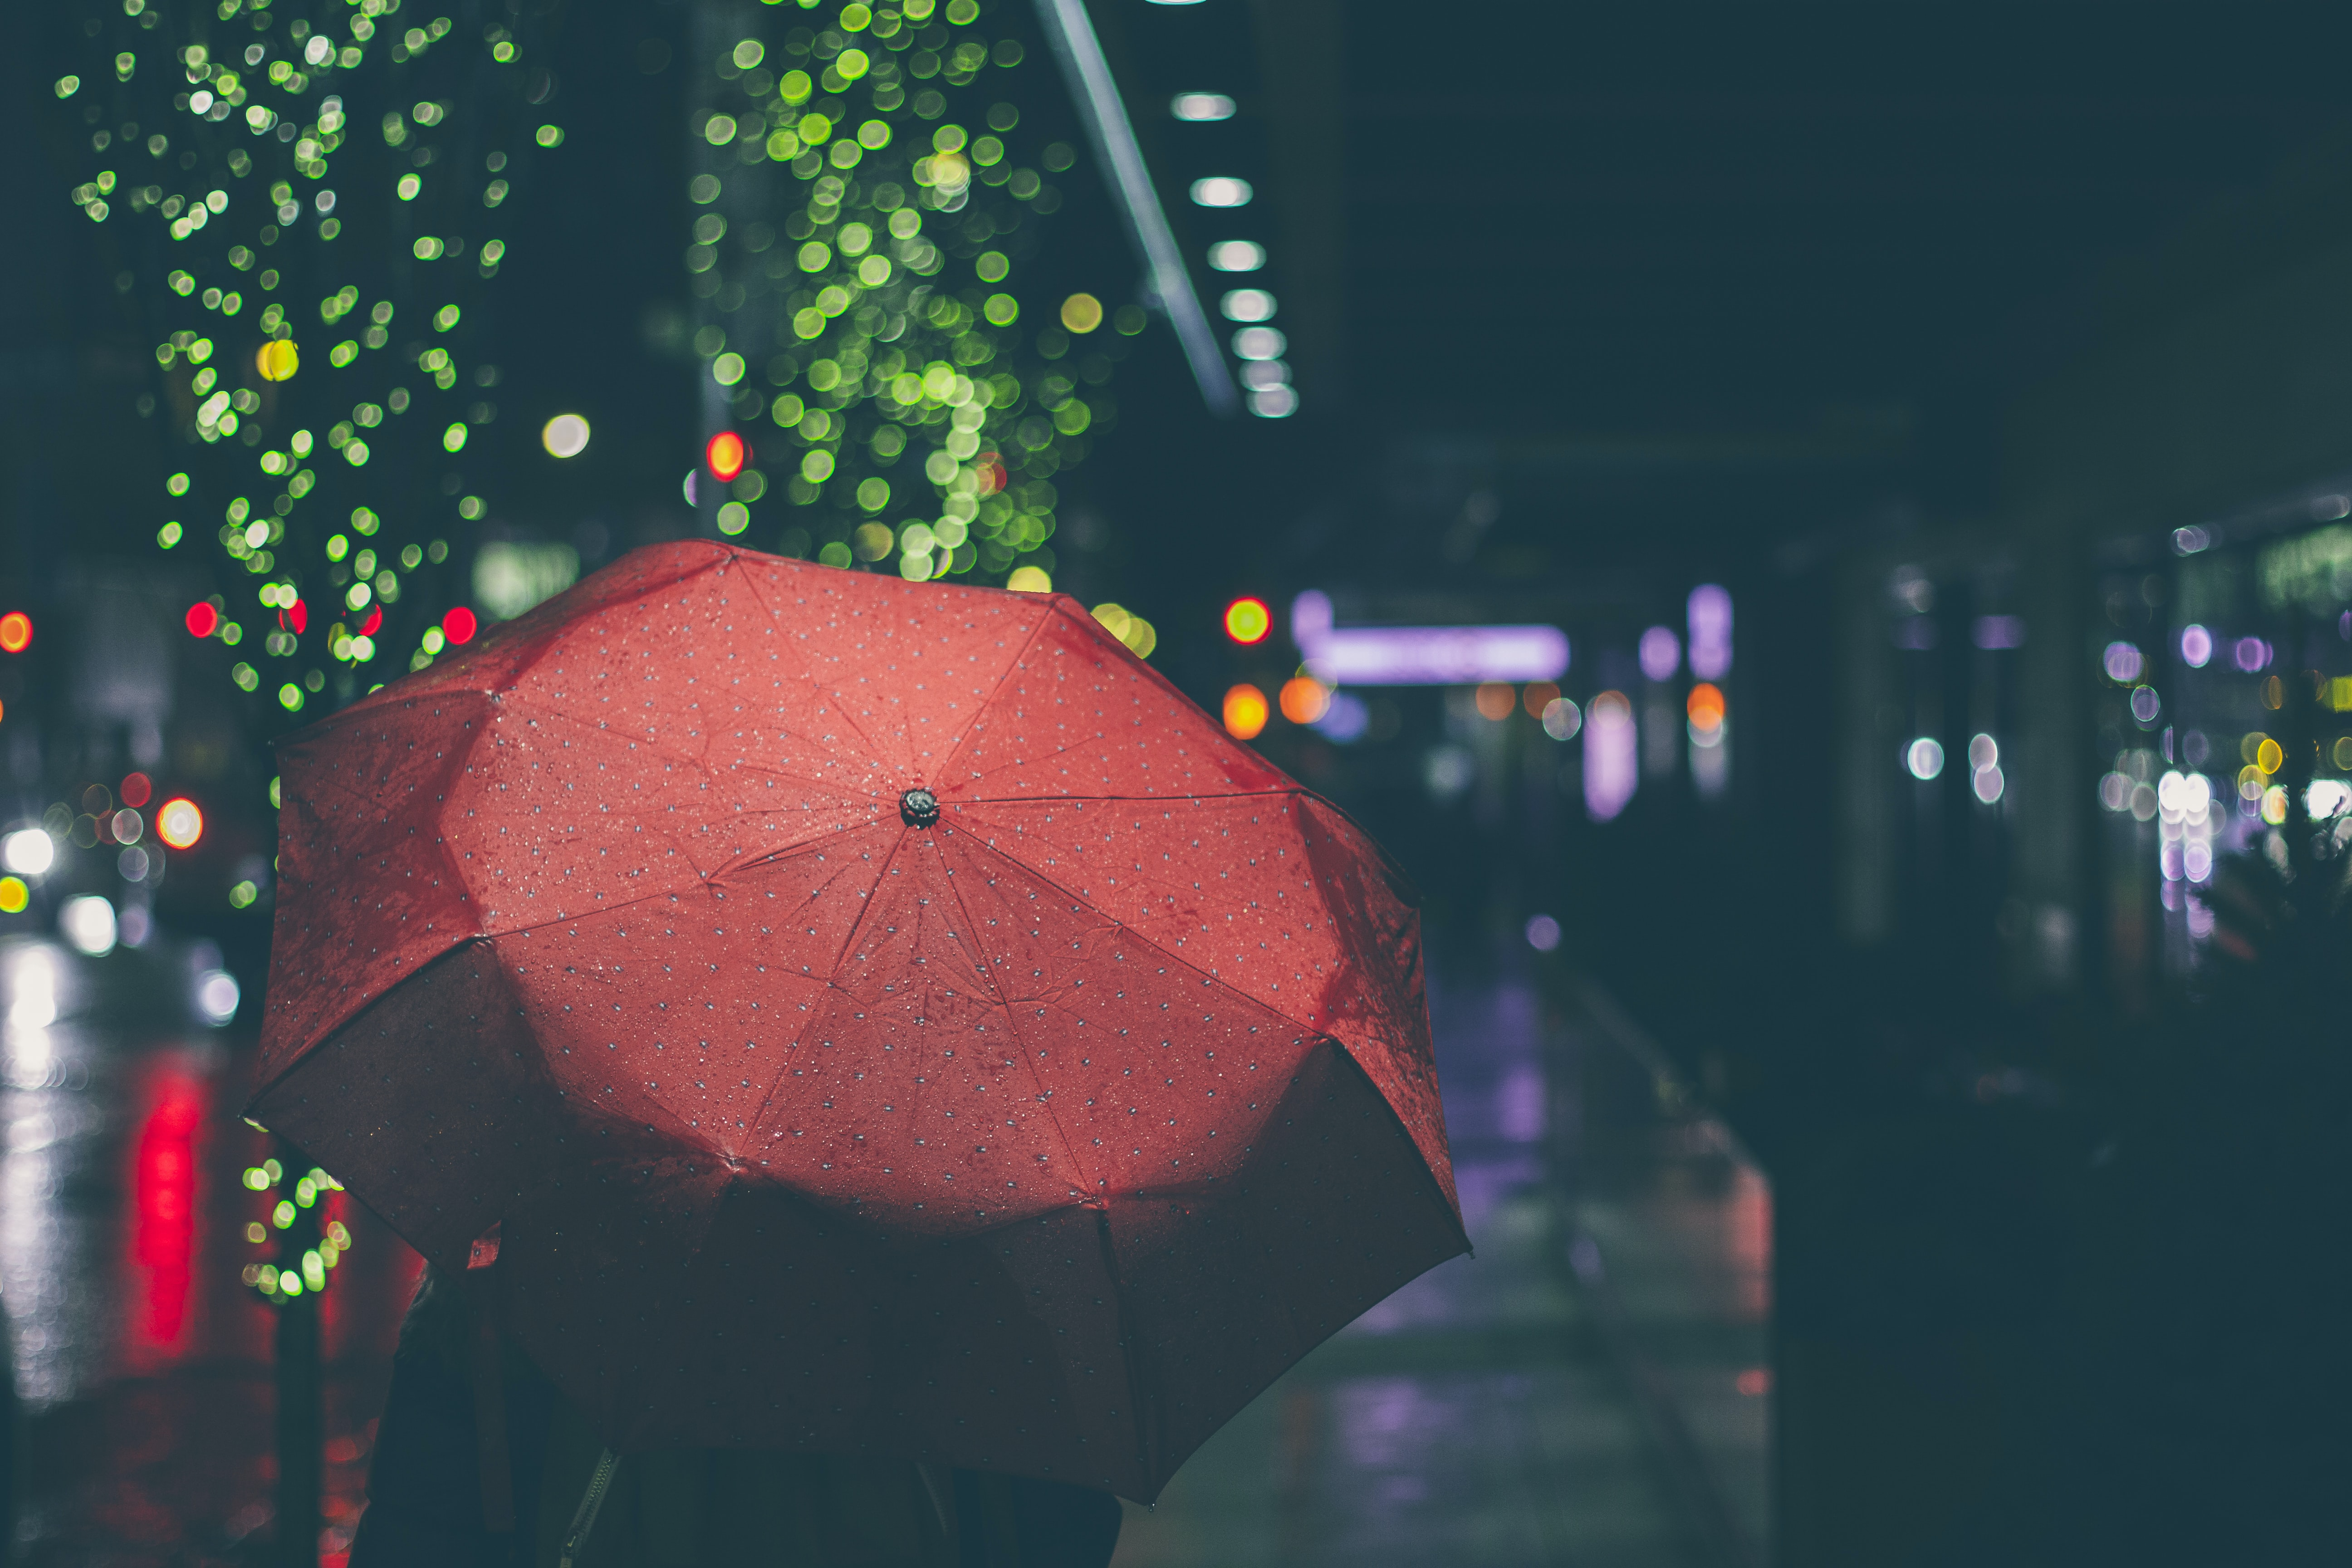 Person carries a red umbrella on a rainy night in the city